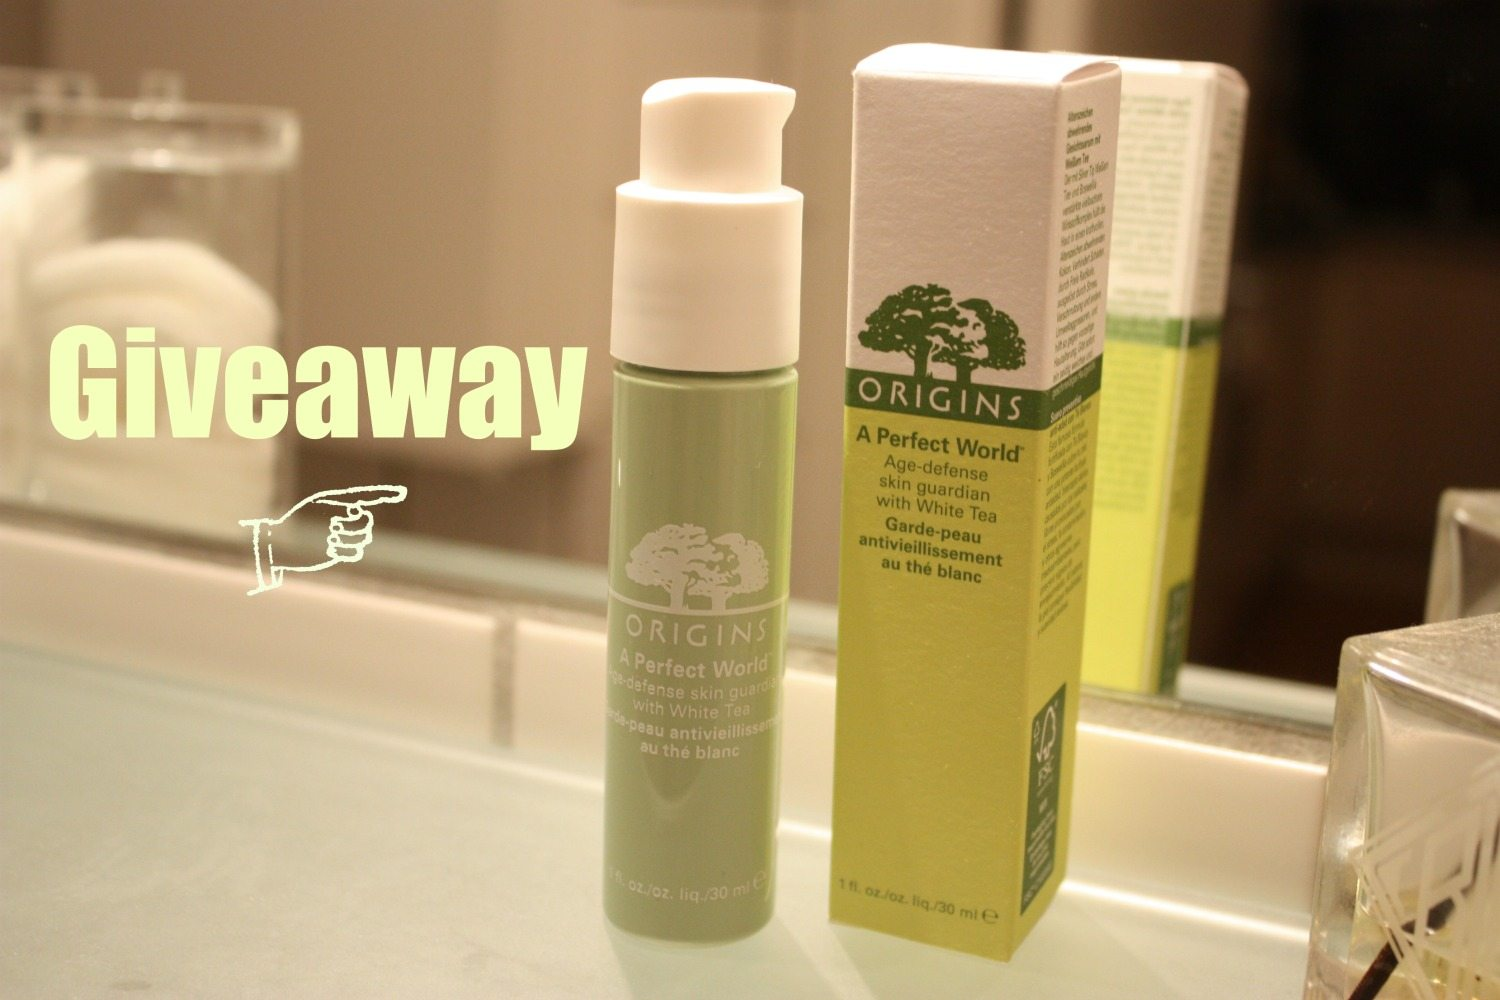 Giveaway2014